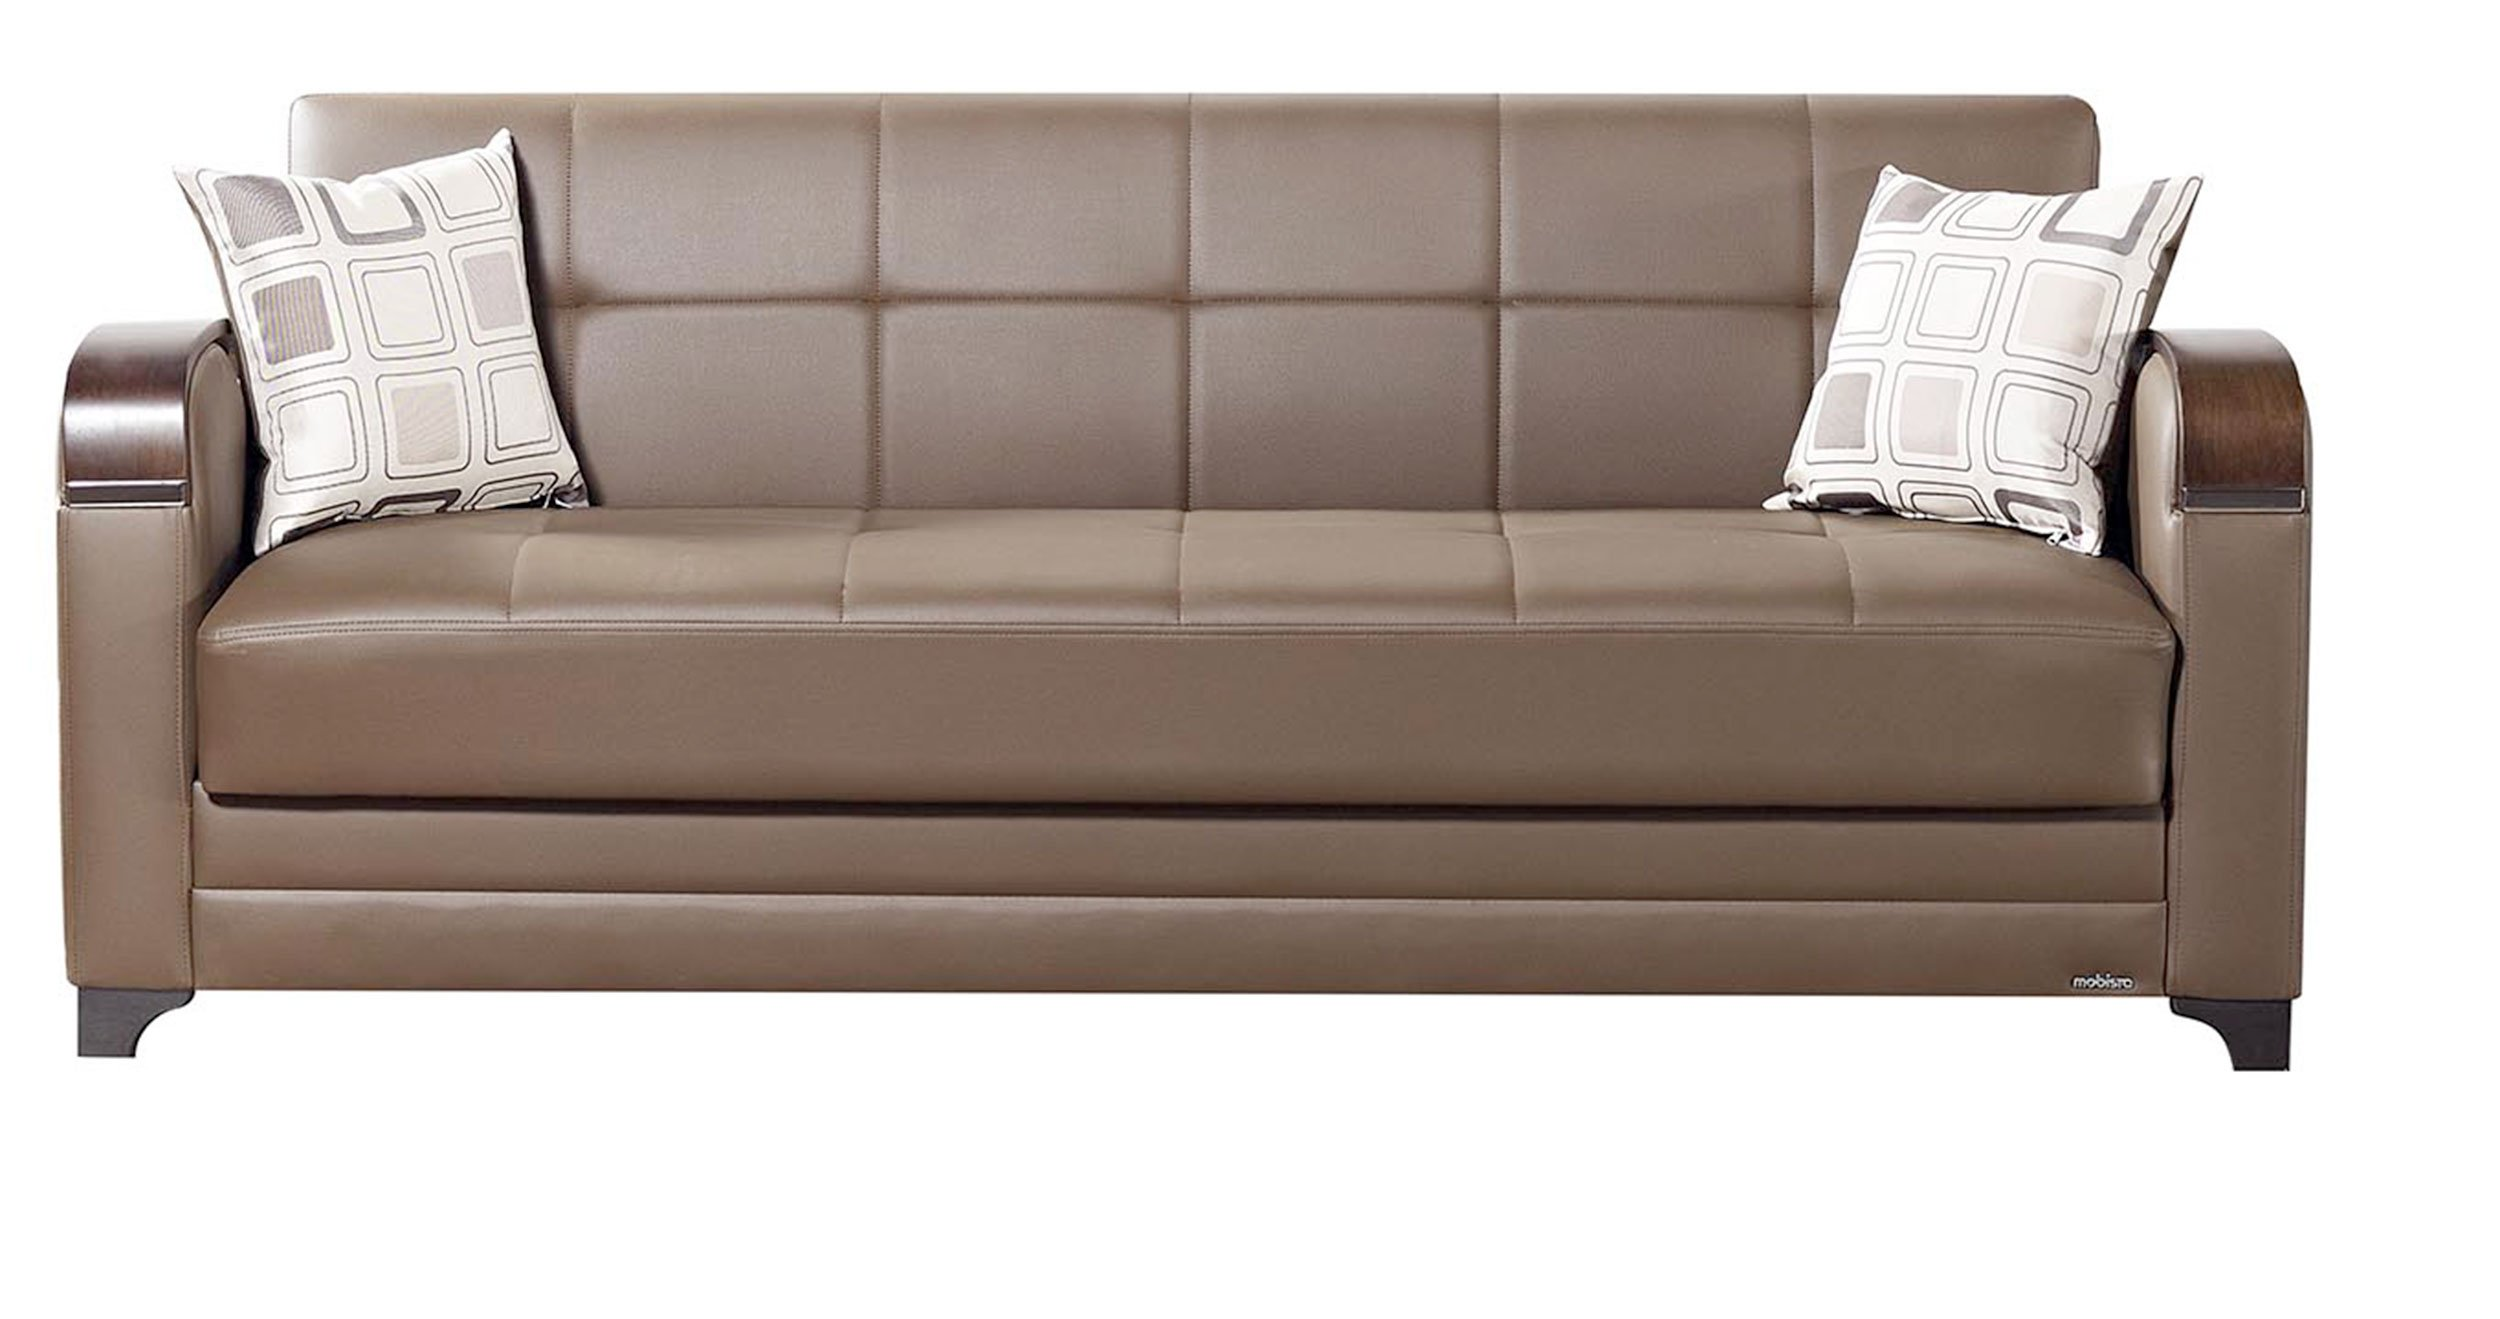 Etro prestige brown leatherette sofa bed by mobista for Sofa bed name